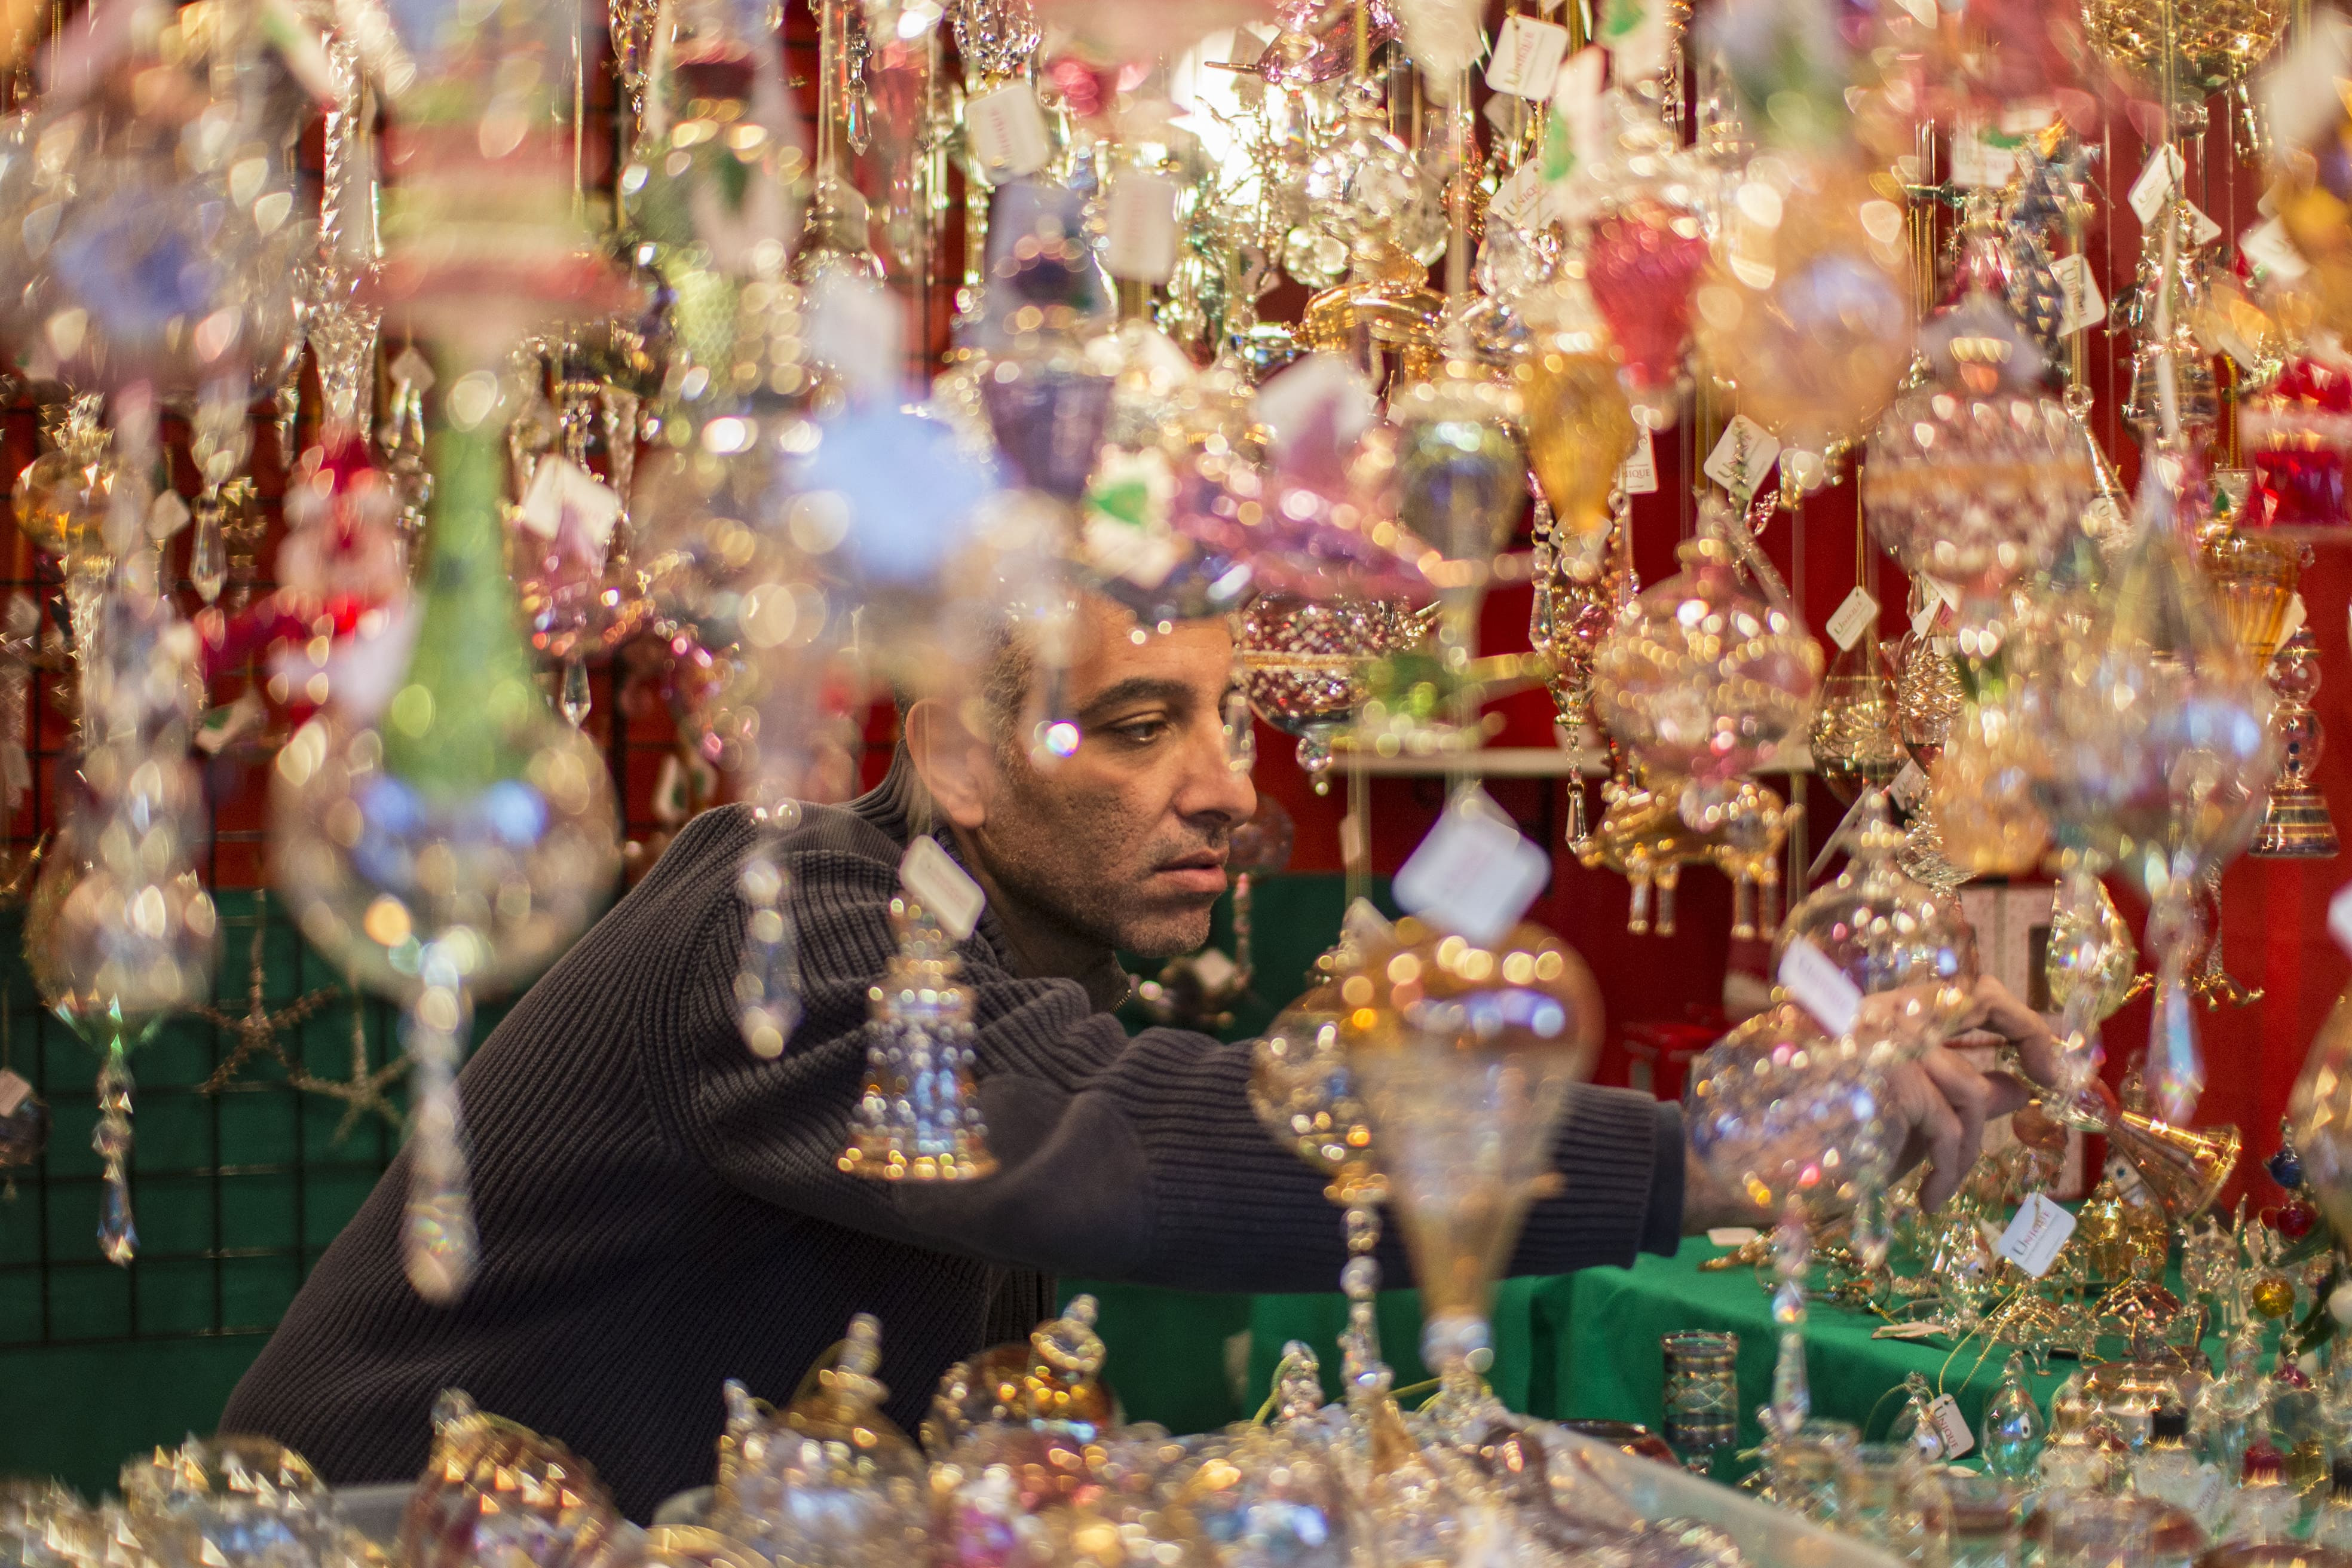 ChristmasVillage_PHL_Ornaments_Credit_DaveLakatos.jpg